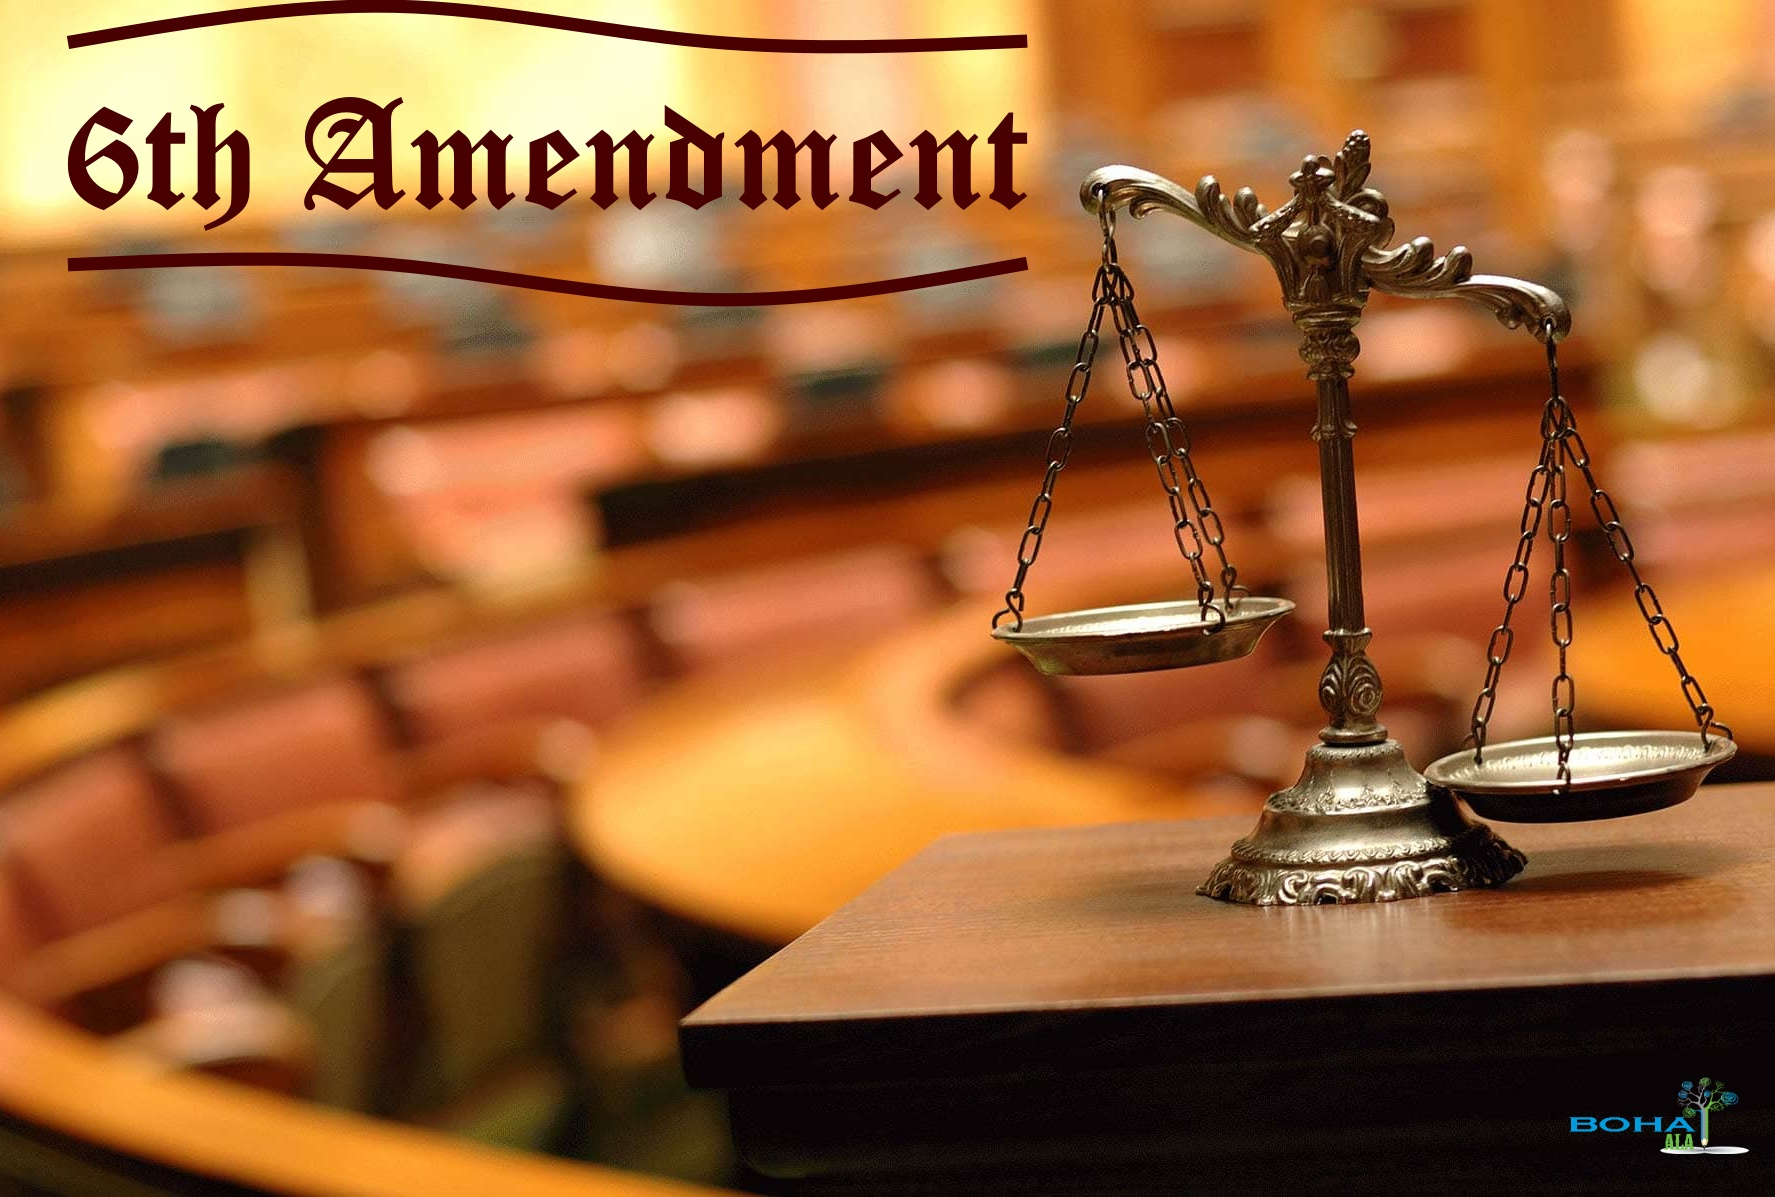 The Importance of Sixth Amendment